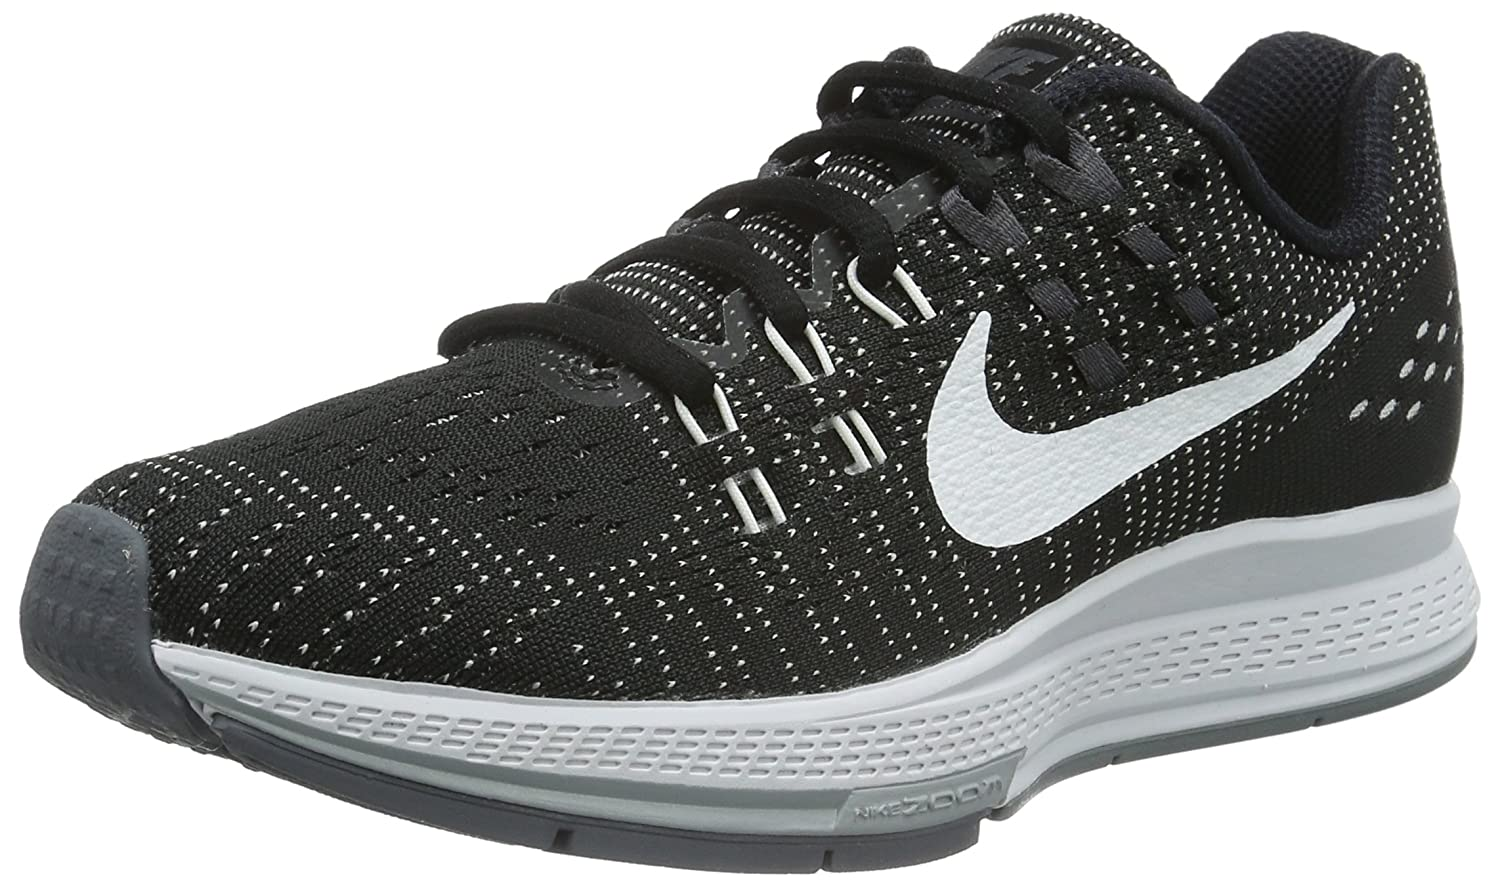 NIKE Mens Air Zoom Structure 19 Running Shoes B015EPKX2A 9 B(M) US|Black/White-dark Grey